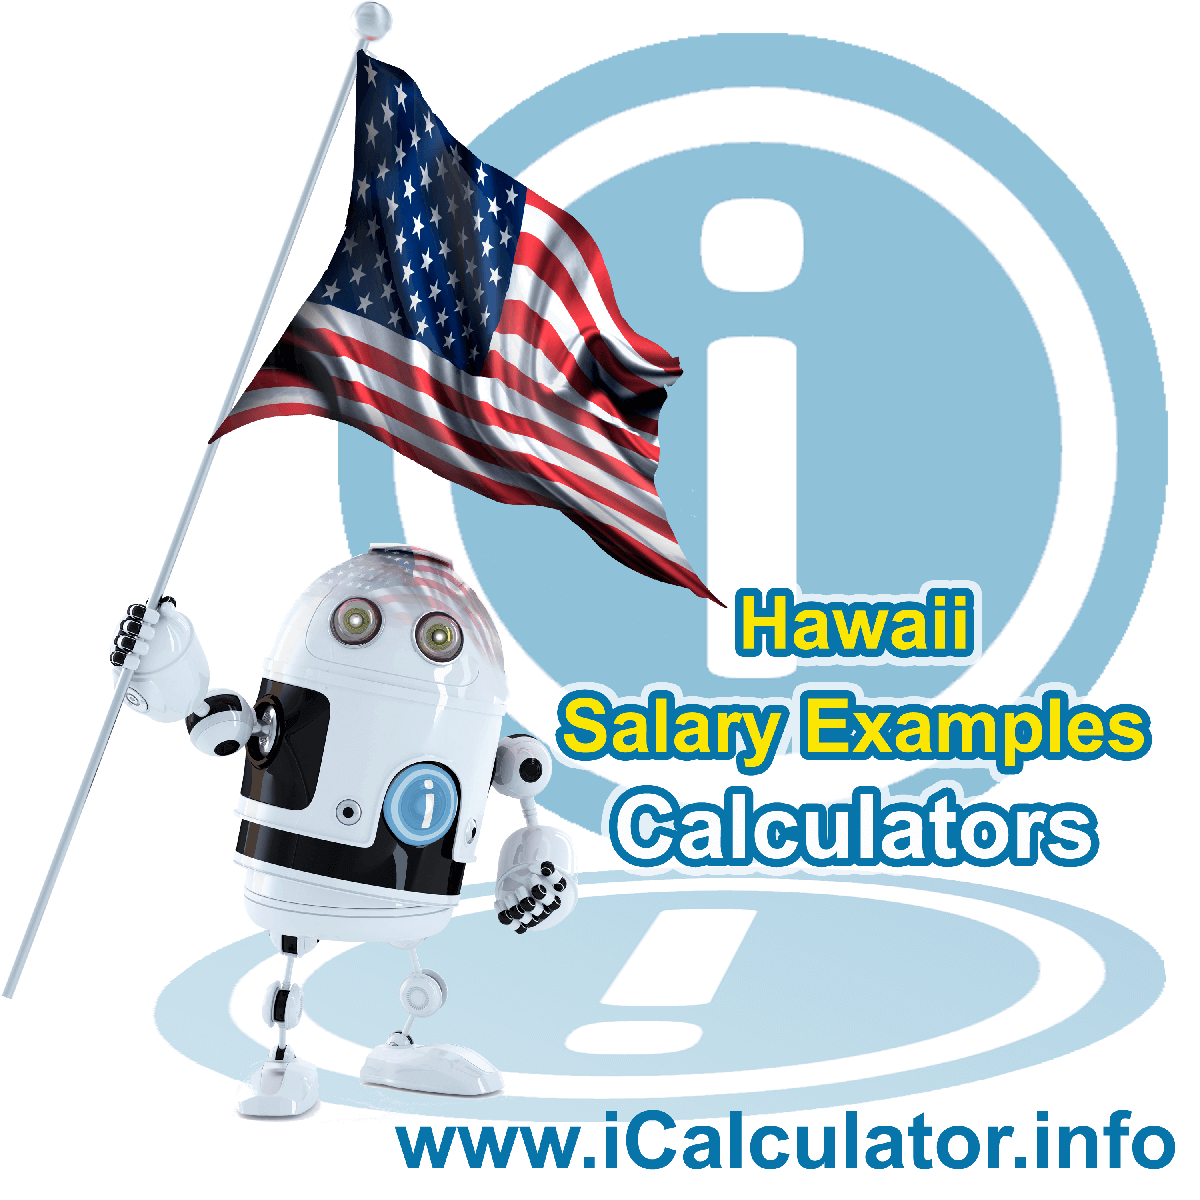 Hawaii Salary Example for $130.00 in 2020 | iCalculator | $130.00 salary example for employee and employer paying Hawaii State tincome taxes. Detailed salary after tax calculation including Hawaii State Tax, Federal State Tax, Medicare Deductions, Social Security, Capital Gains and other income tax and salary deductions complete with supporting Hawaii state tax tables